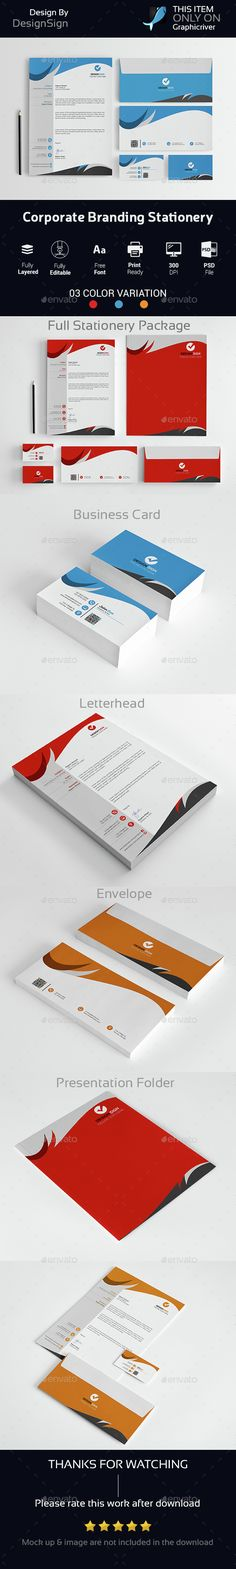 Corporate Branding Stationery Vol-04